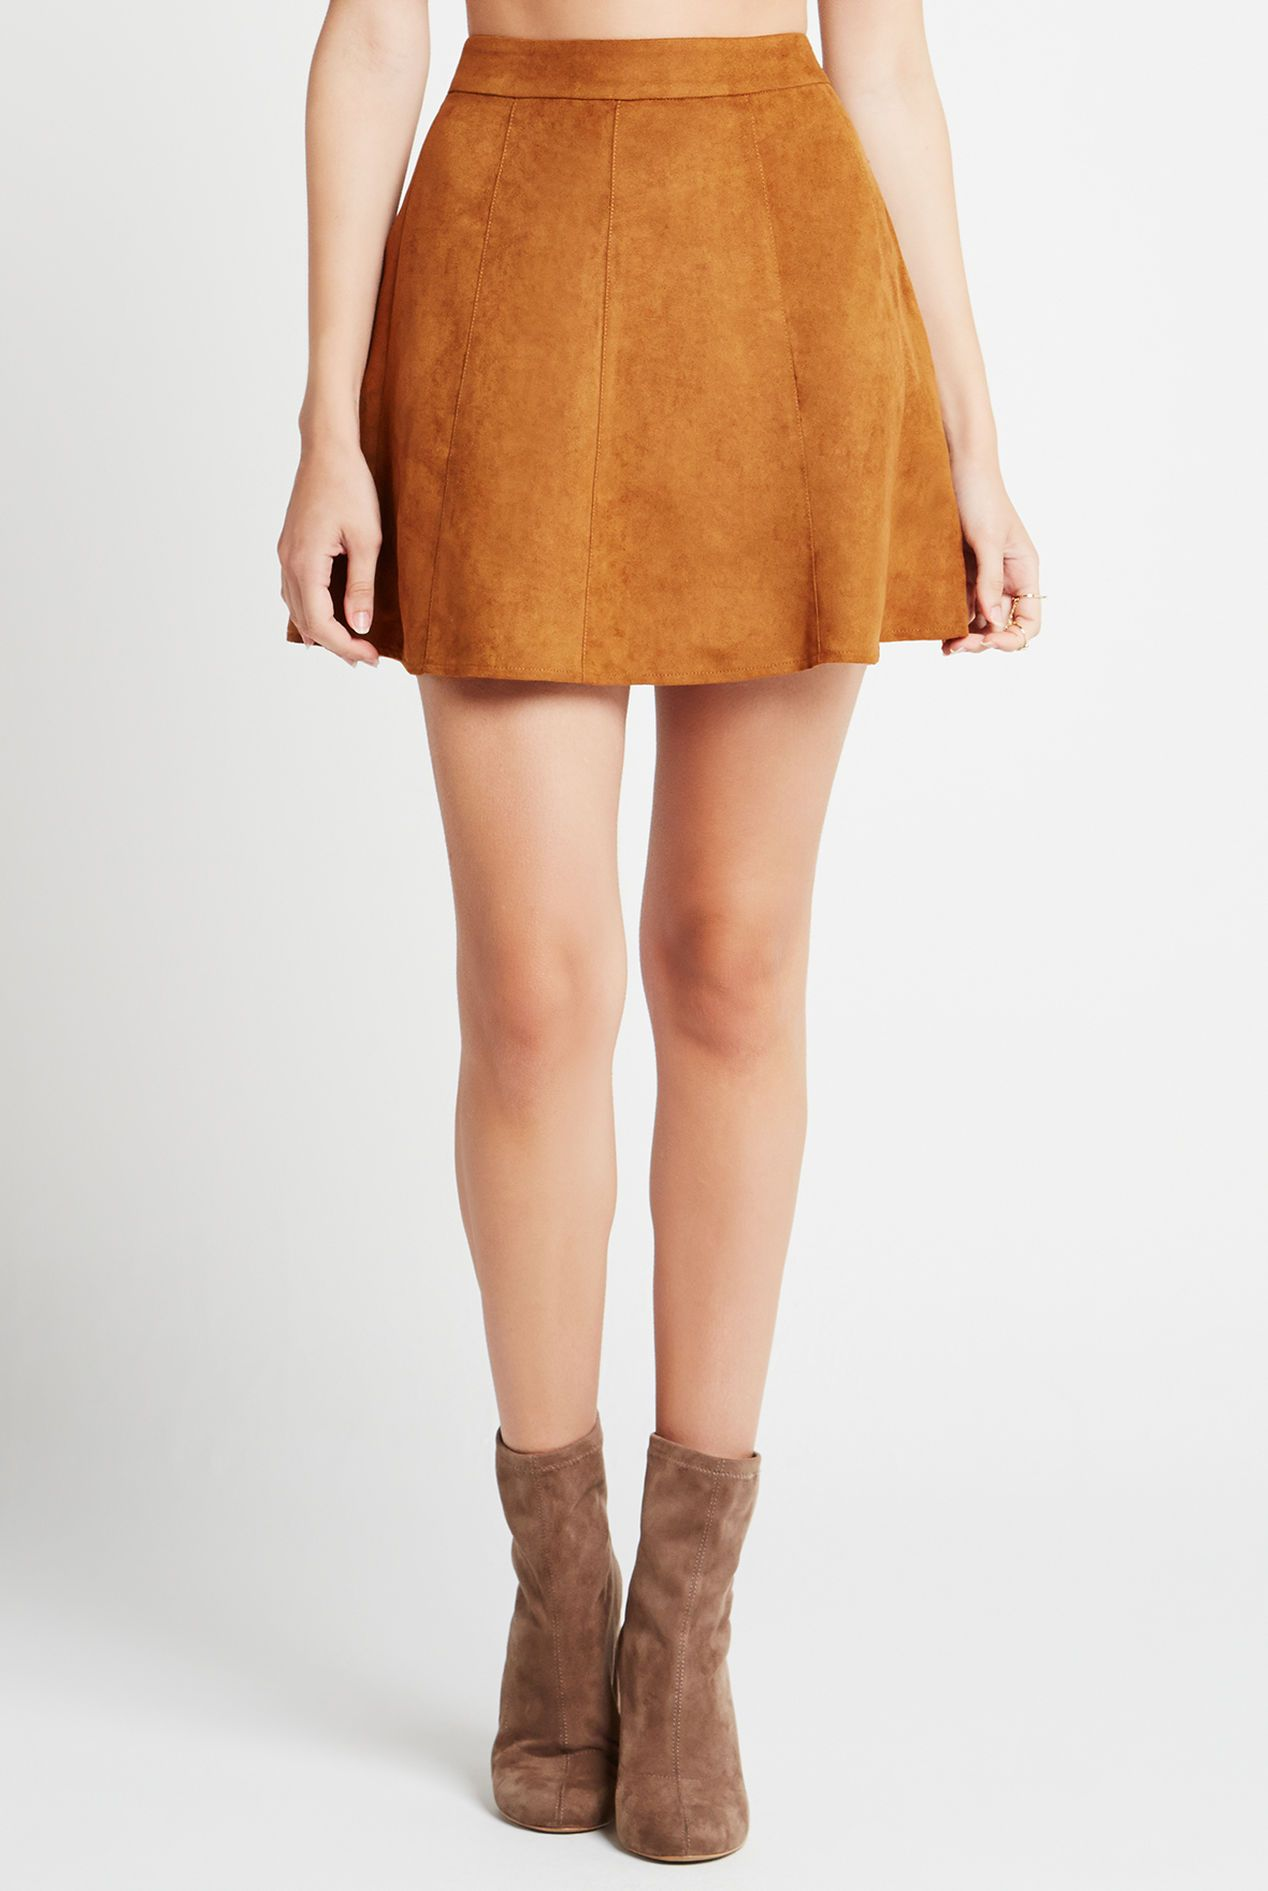 51dfcd3346 Cognac Faux Suede A-Line Skirt Can Be Styled and Navy or Burgundy Sweater  For A Cute Fall Look.